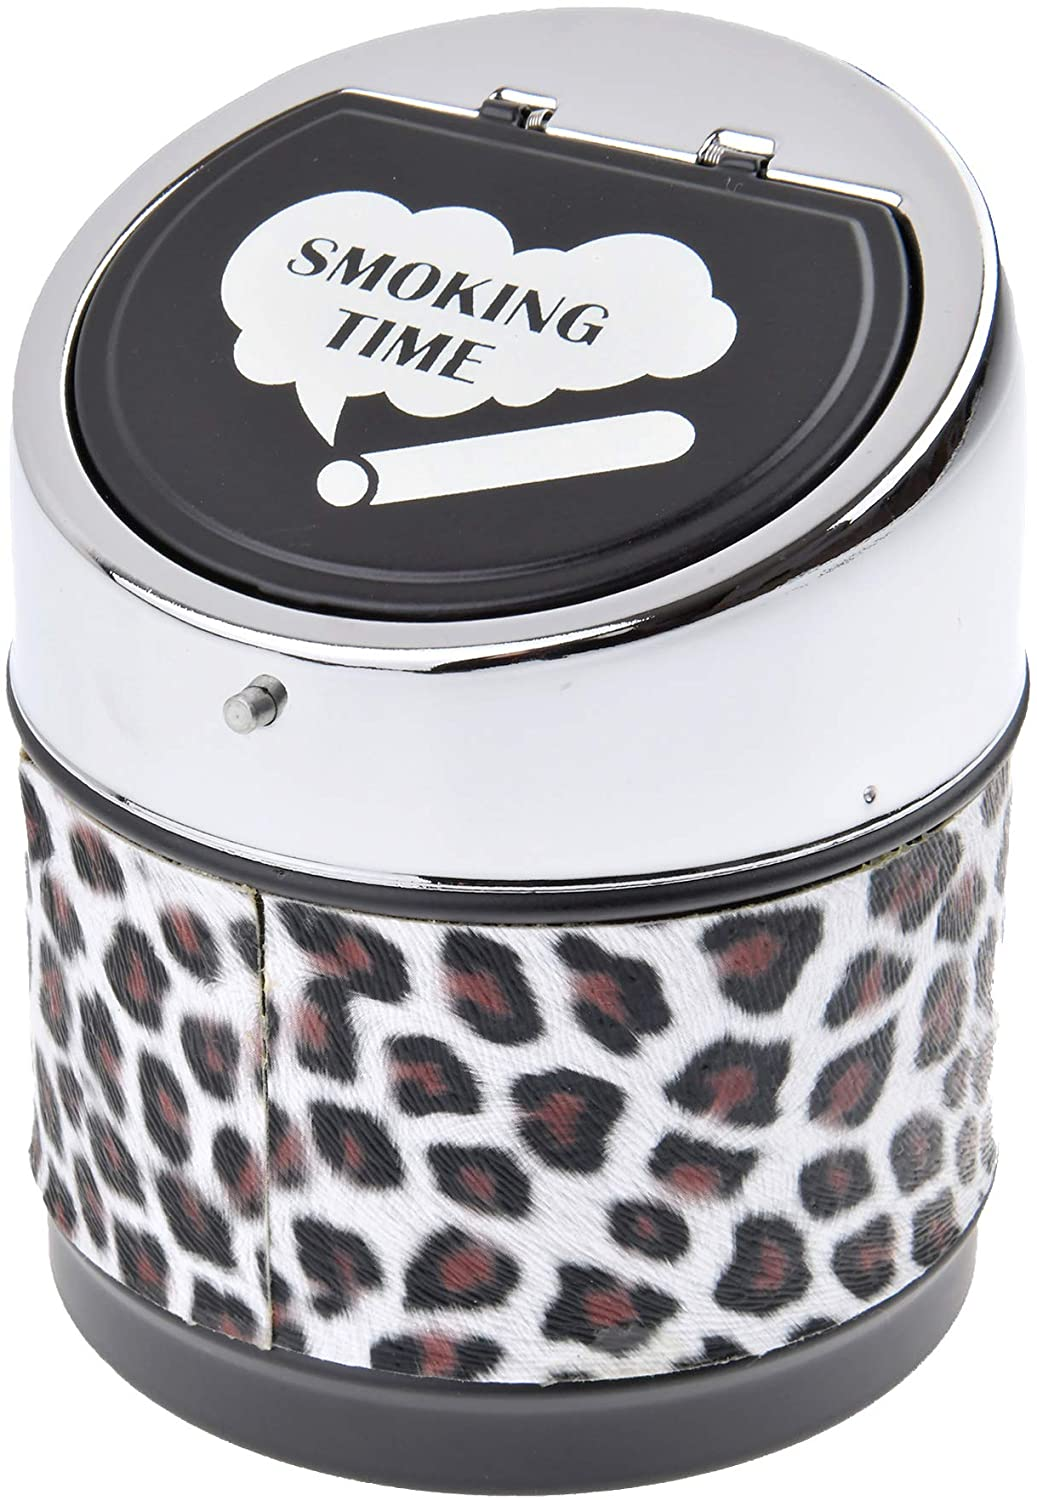 Quantum Abacus Round Windproof Ashtray Made of Metal and PU Leather, with lid, Animal Print Pattern, Colour: Brown, Mod. 982BF-04